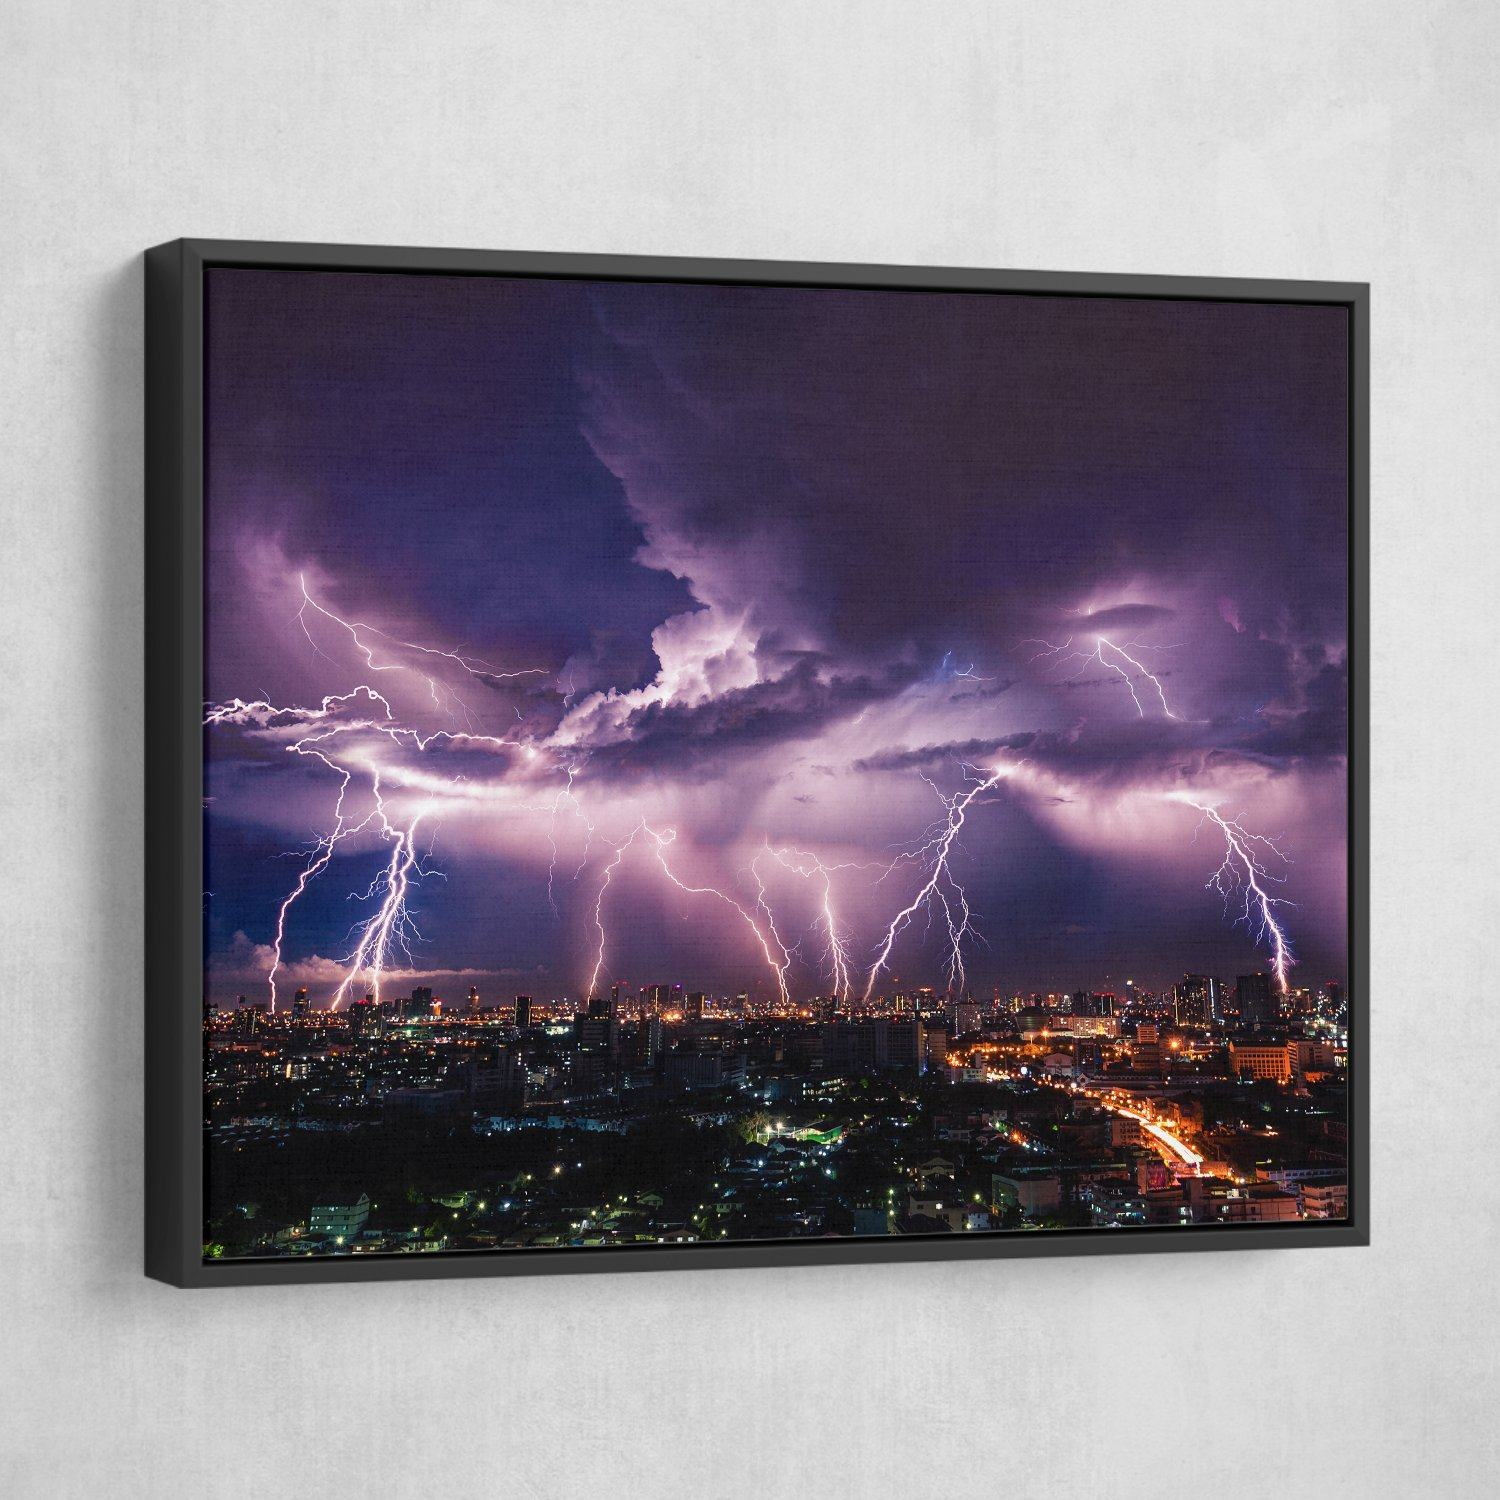 Lightning Storm Over City wall art black frame